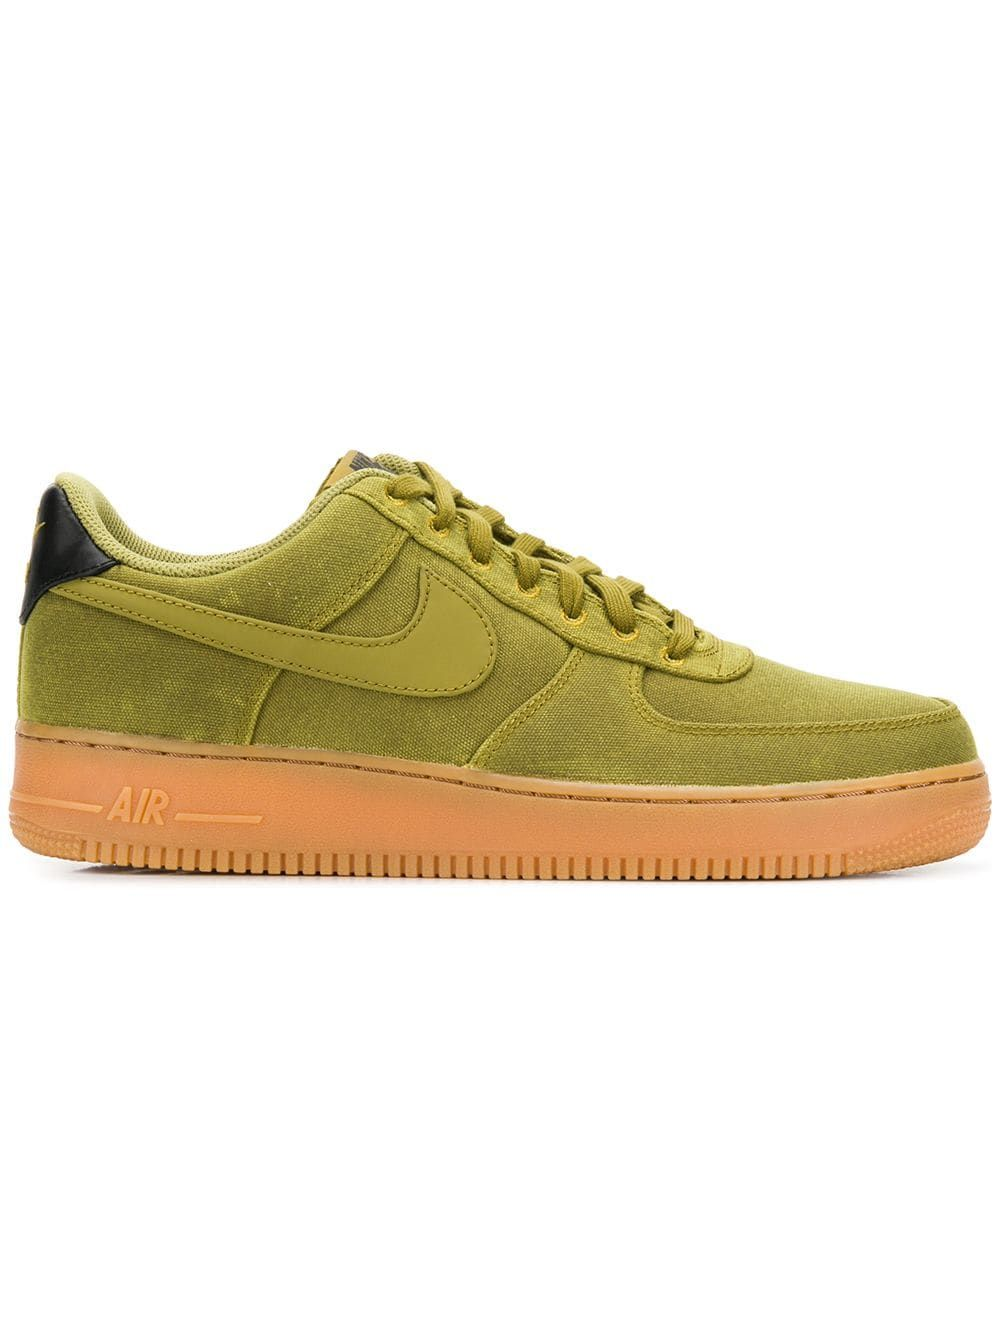 47a77056d NIKE NIKE AIR FORCE 1 '07 LV8 STYLE SNEAKERS - GREEN. #nike #shoes ...